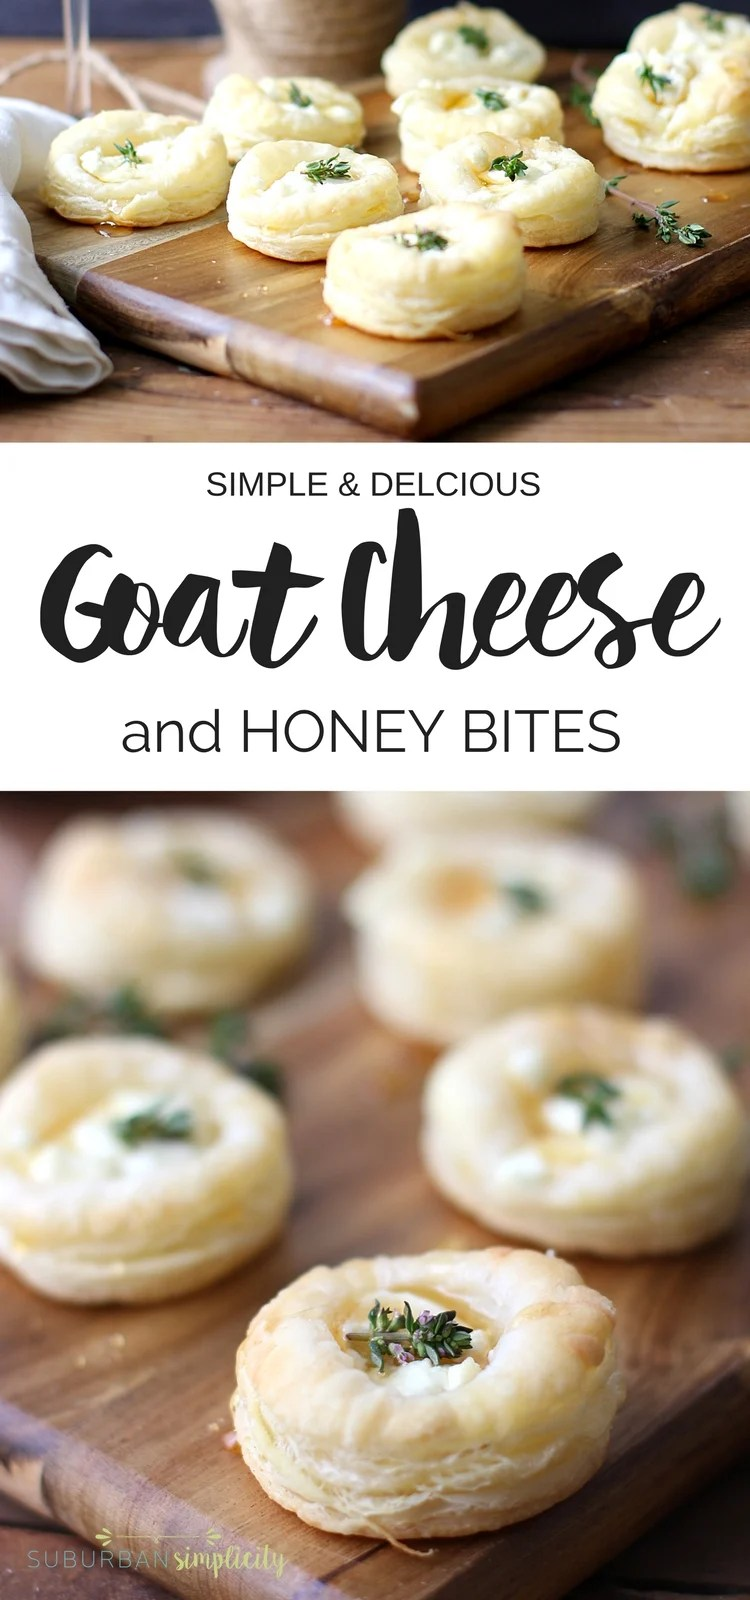 avory Goat Cheese and Honey Bites are the perfect appetizer recipe for your next gathering or holiday party. Flaky pastry topped with creamy goat cheese, sweet honey and thyme make an easy entertaining idea! #appetizers #puffpastry